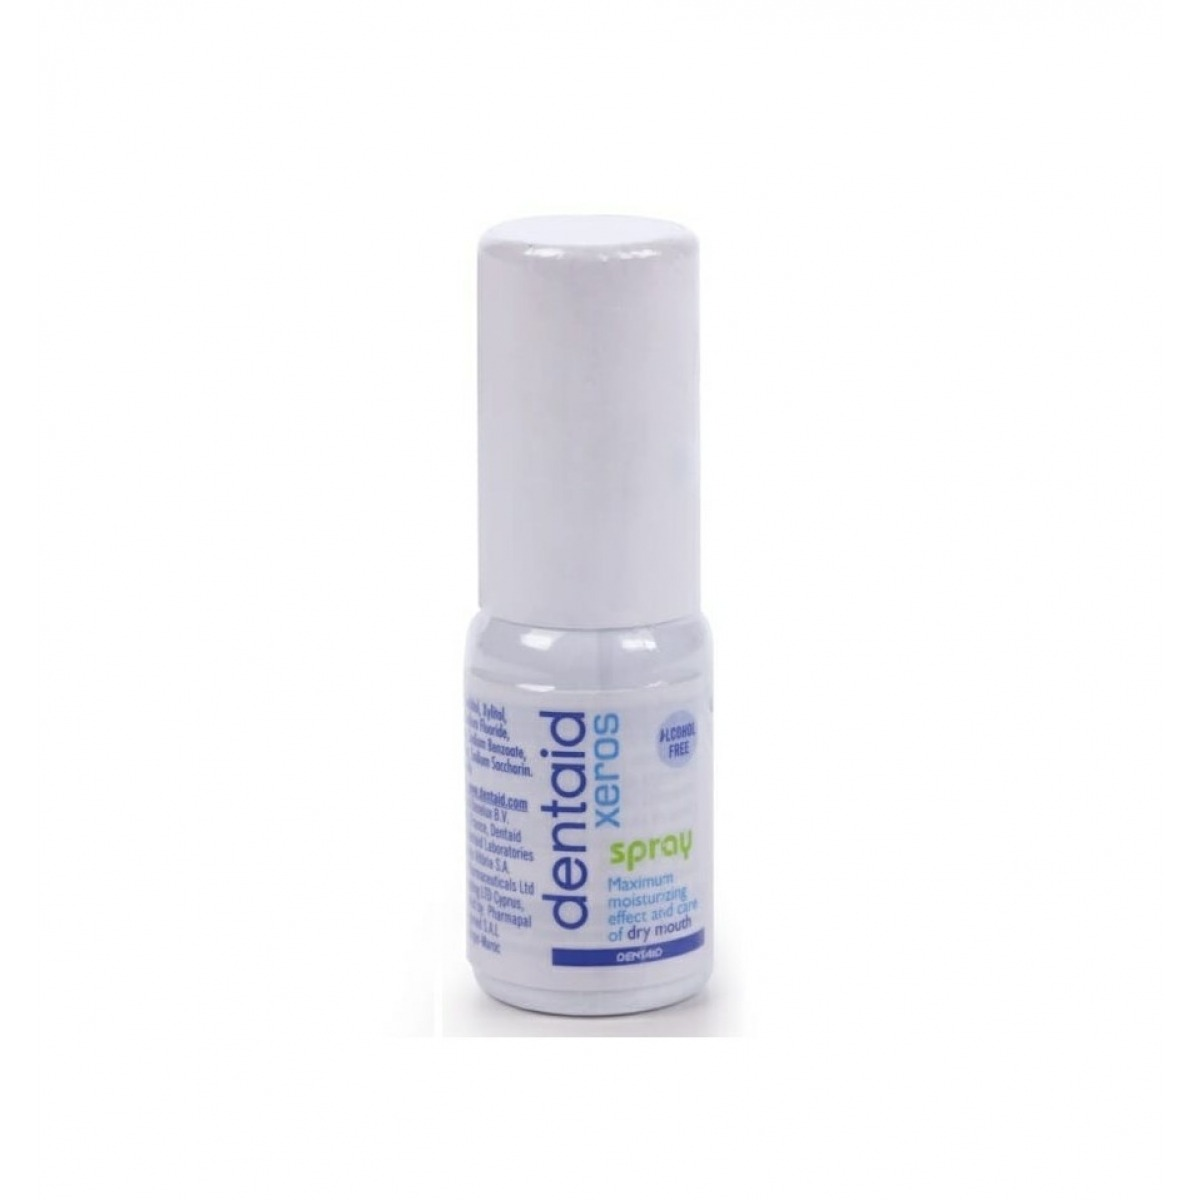 XEROSDENTAIDSPRAY15ML I1